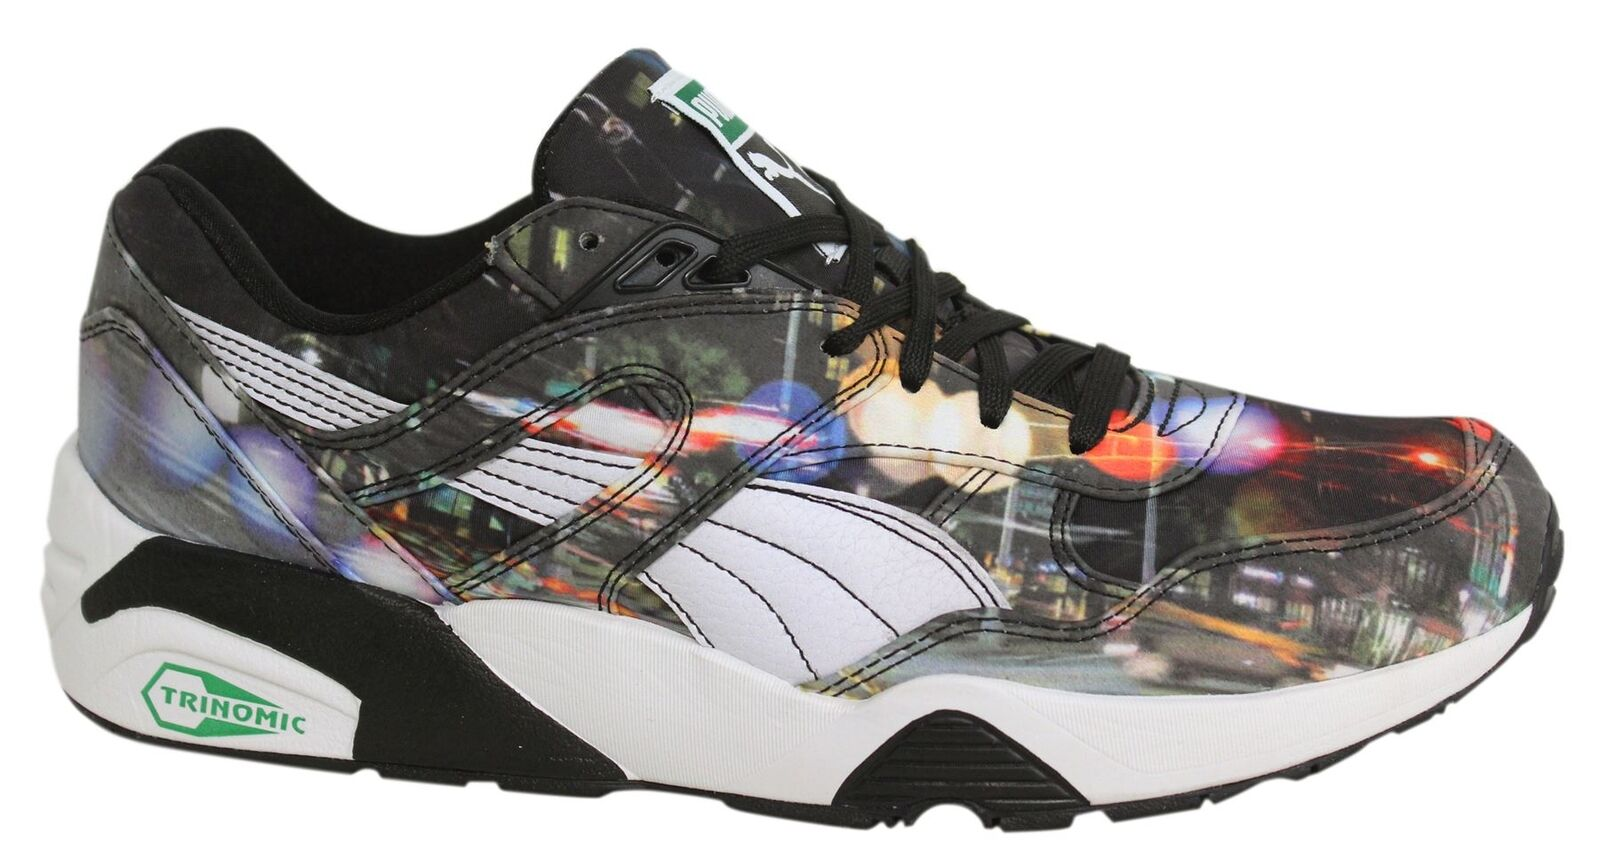 Puma R698 New York City Photoreal Lace Up Mens Trainers 359932 01 M12